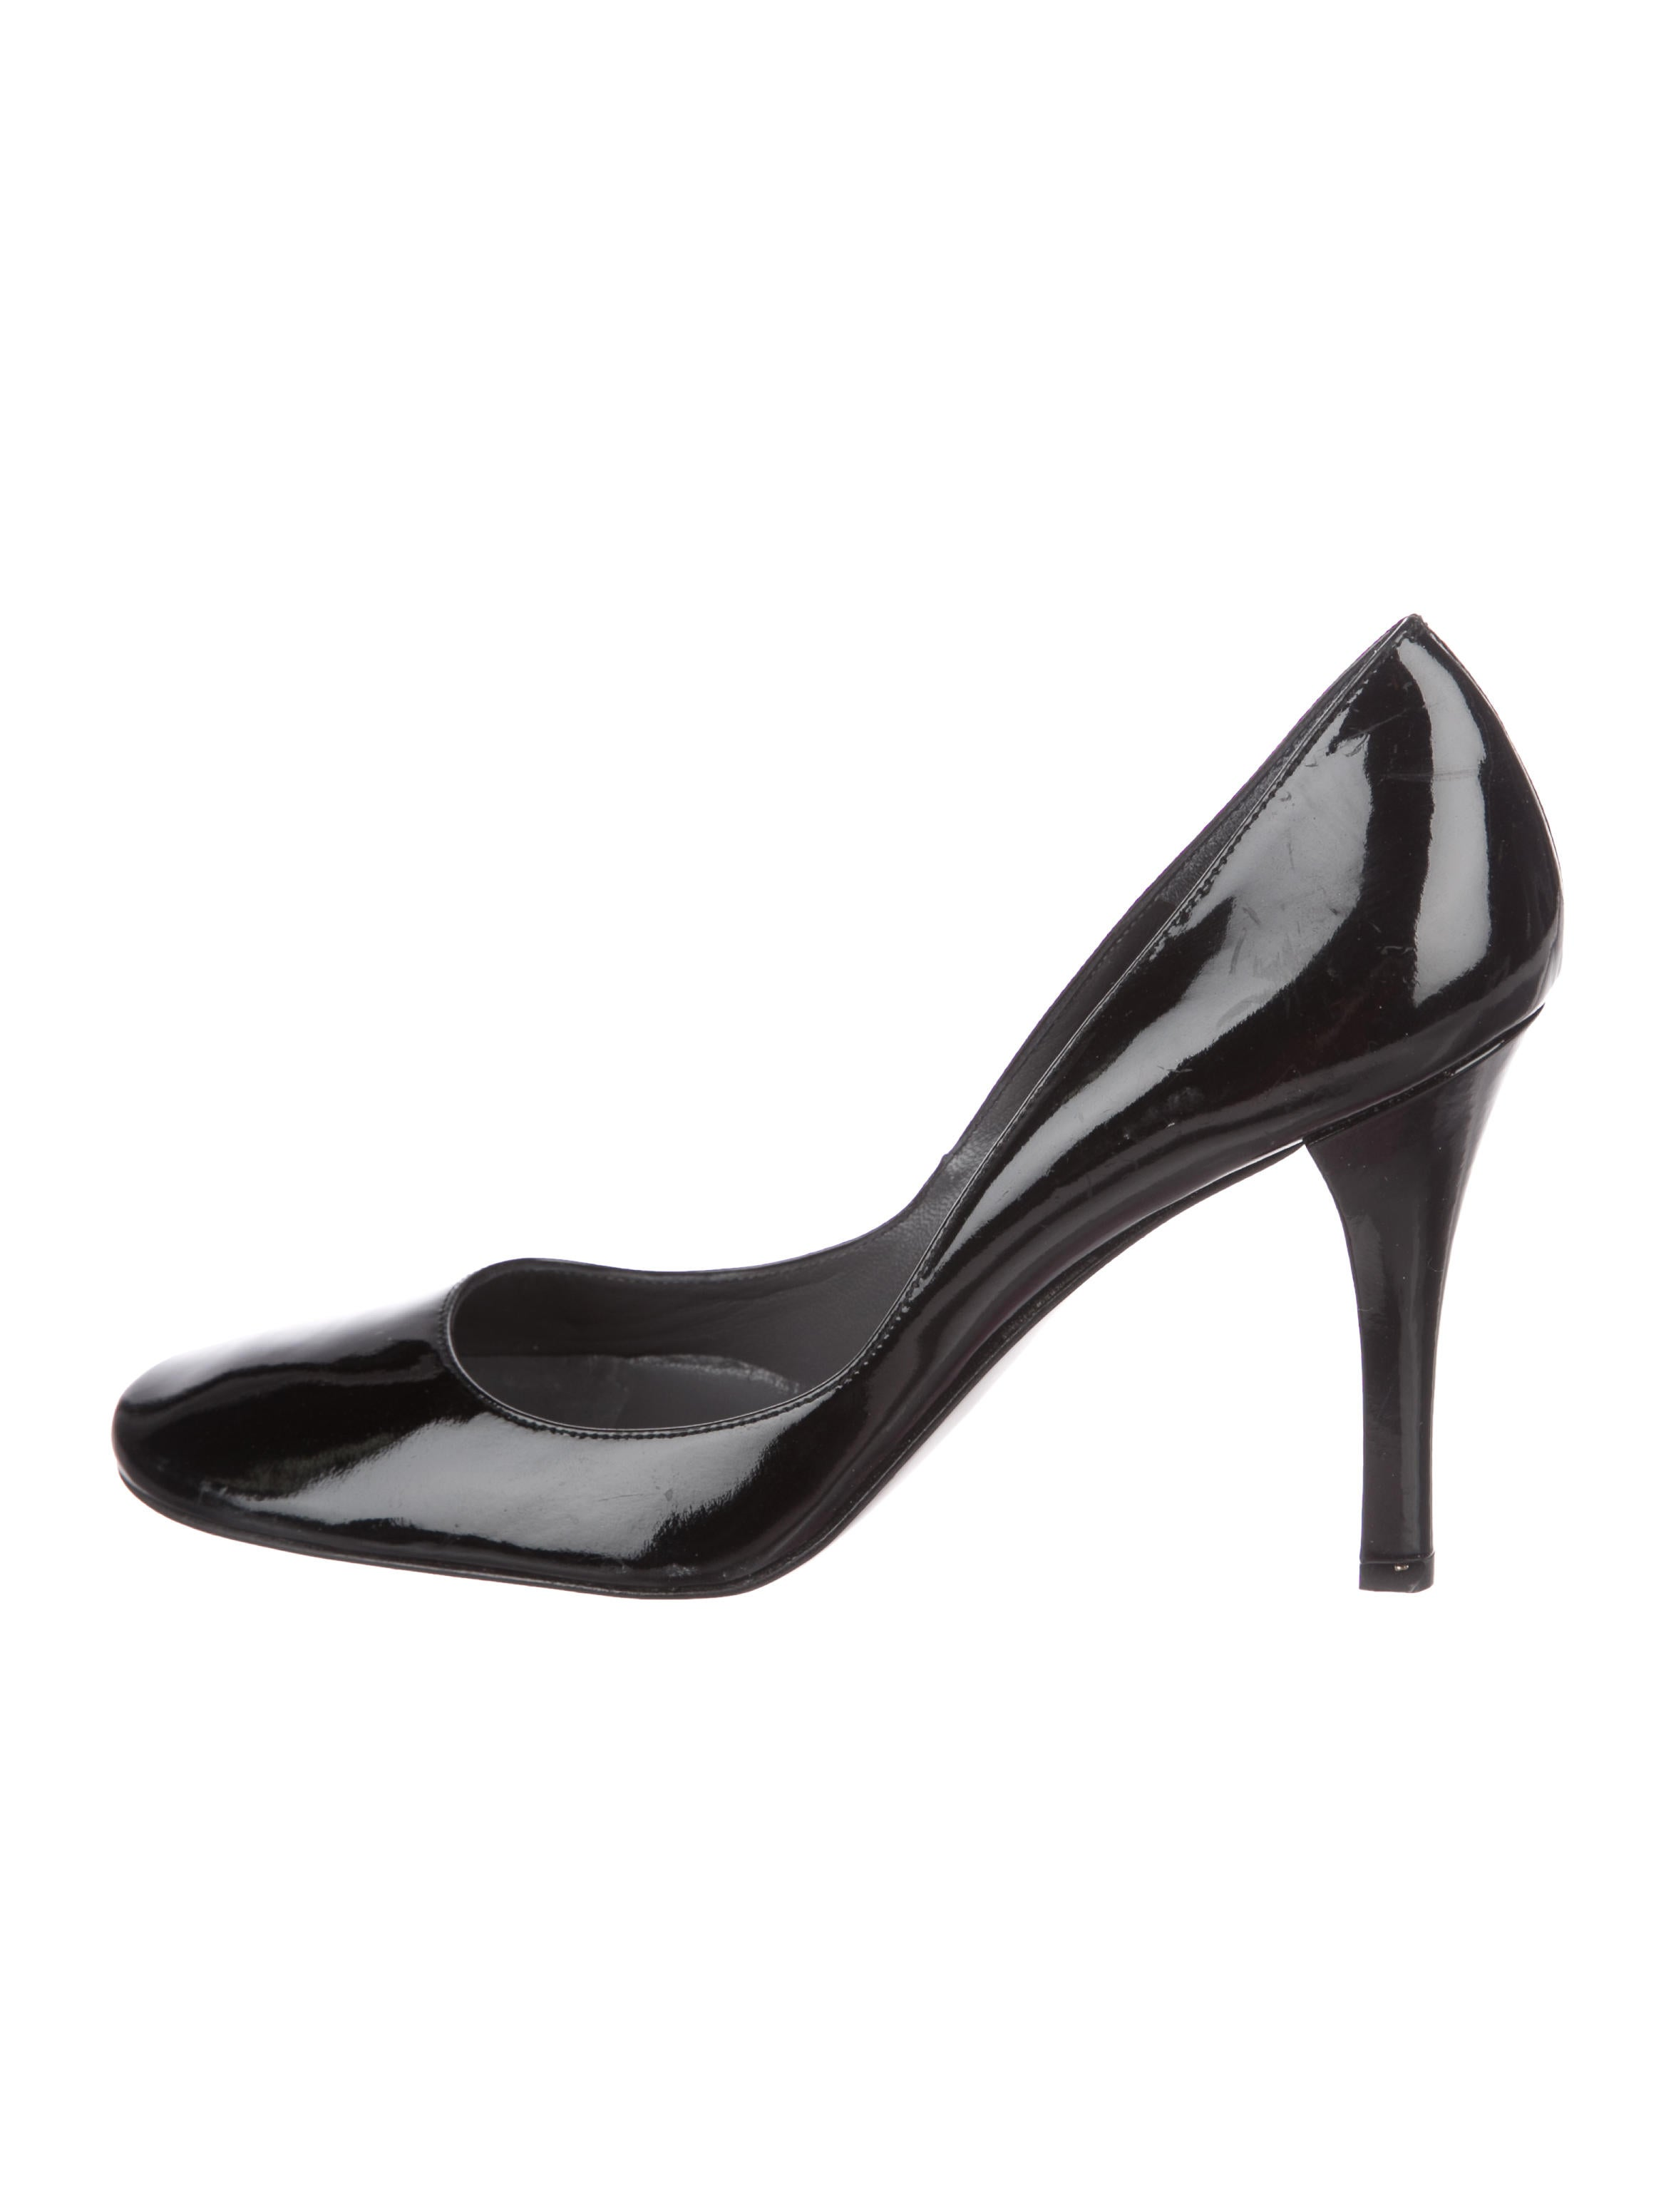 with paypal for sale buy cheap get to buy Delman Patent Leather Round-Toe Pumps Mro6J